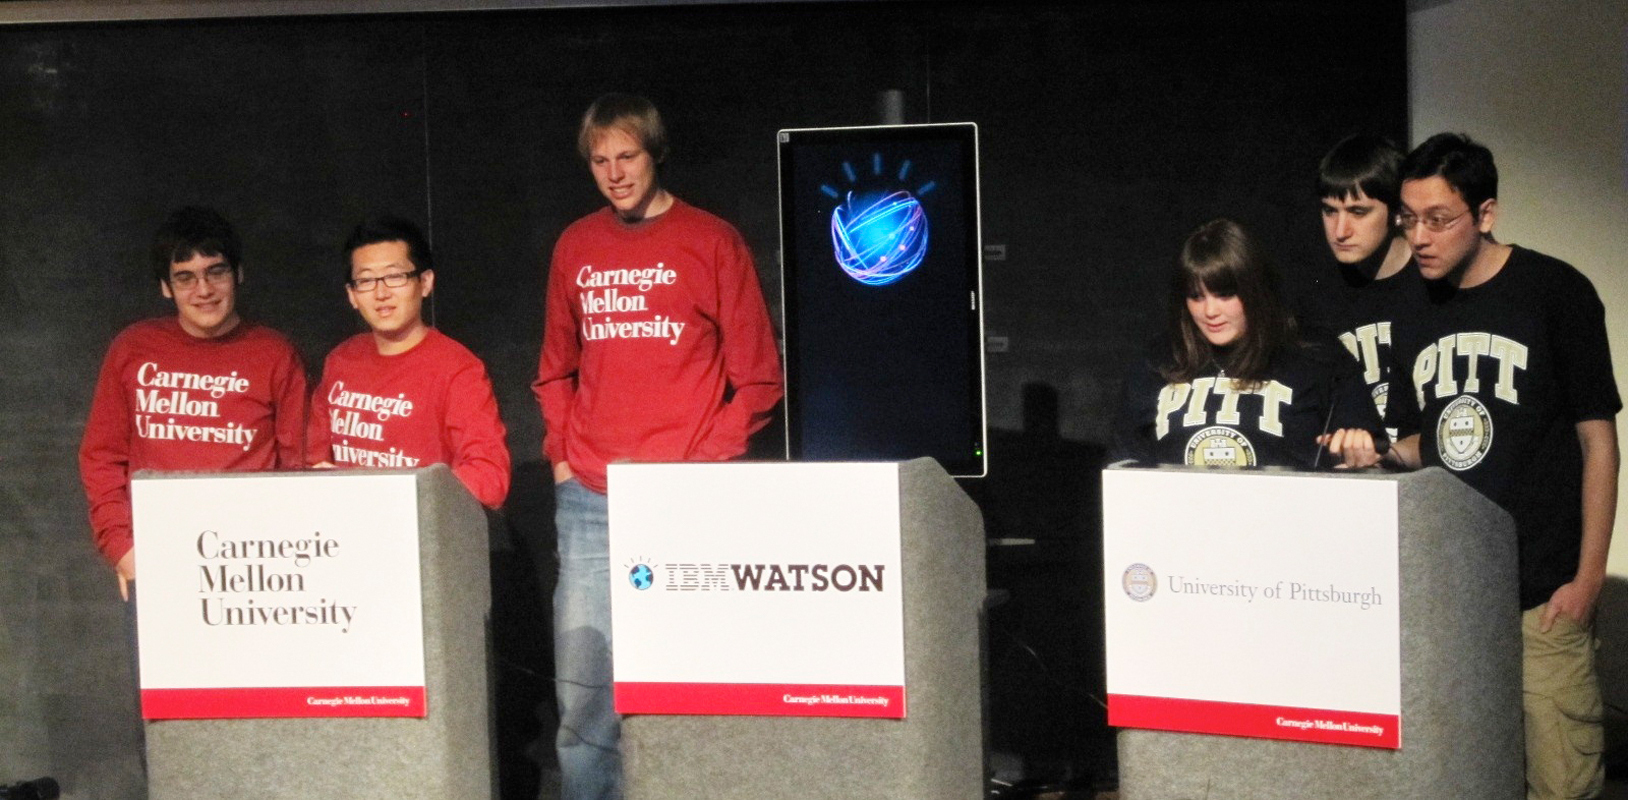 Students from Carnegie Mellon and the University of Pittsburgh compete against Watson in a Jeopardy!-like demonstration held in the University Center on Wednesday, March 30. (credit: Daniel Tkacik/Acting SciTech Editor)